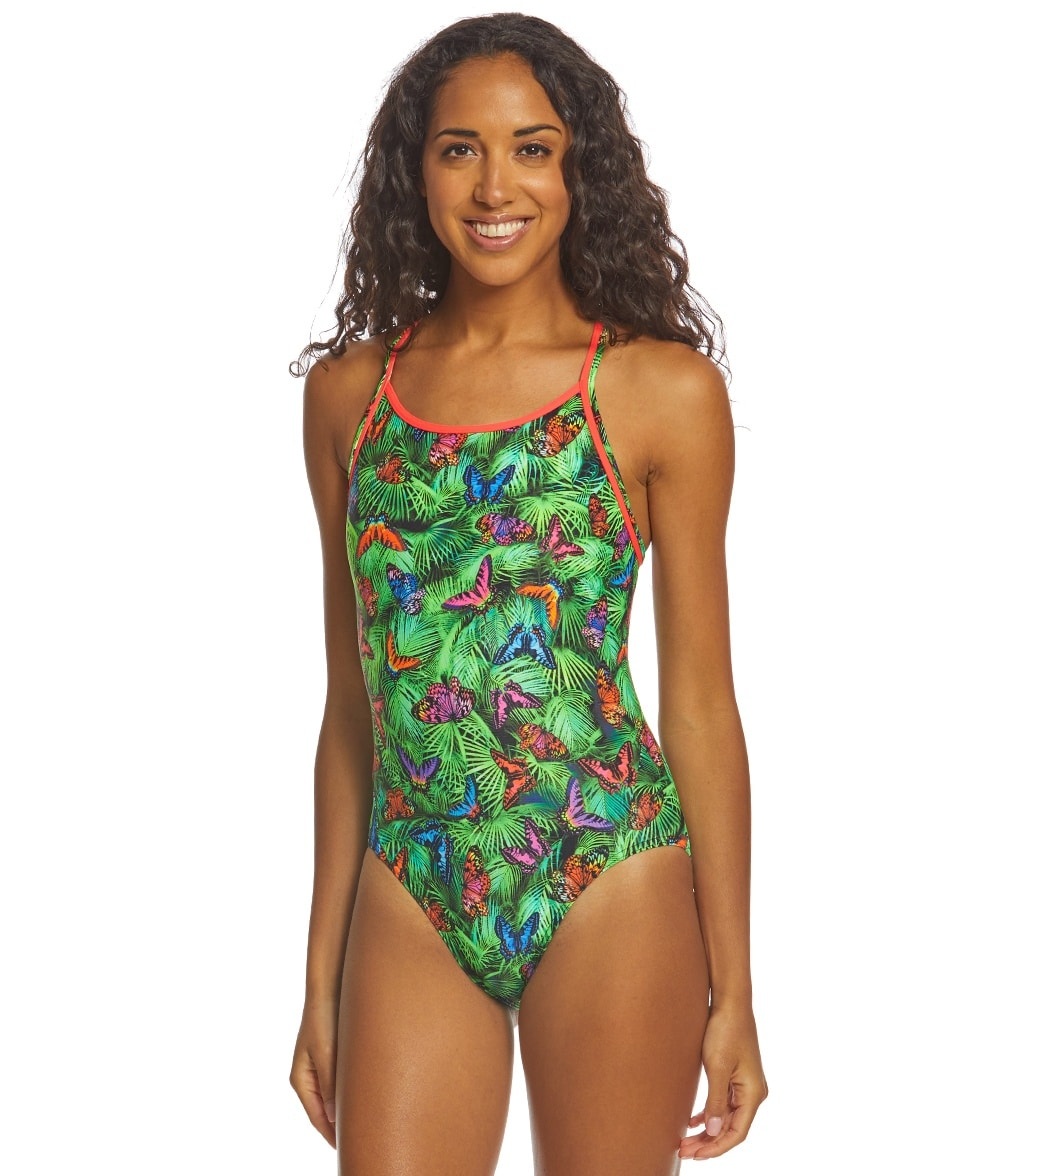 e78ce9f396 Funkita Women's Pretty Fly Diamond Back One Piece Swimsuit at  SwimOutlet.com - Free Shipping